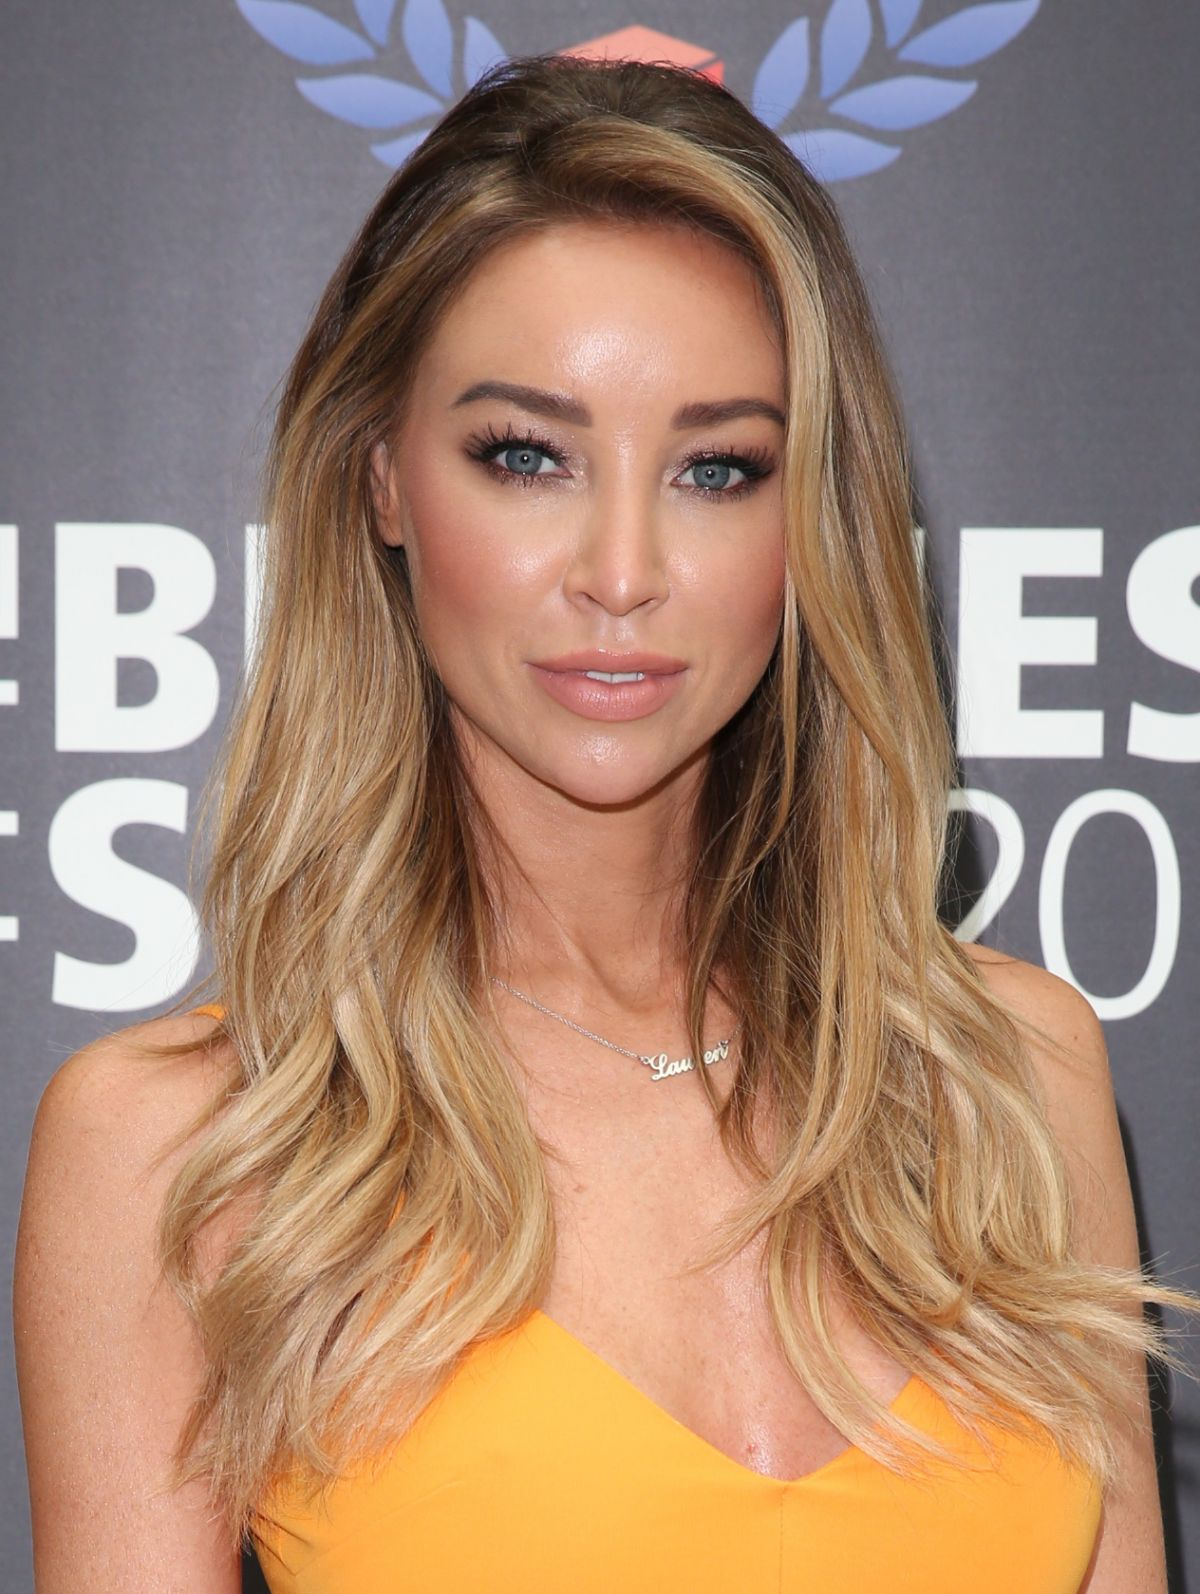 Lauren Pope nudes (22 photos) Topless, Twitter, legs